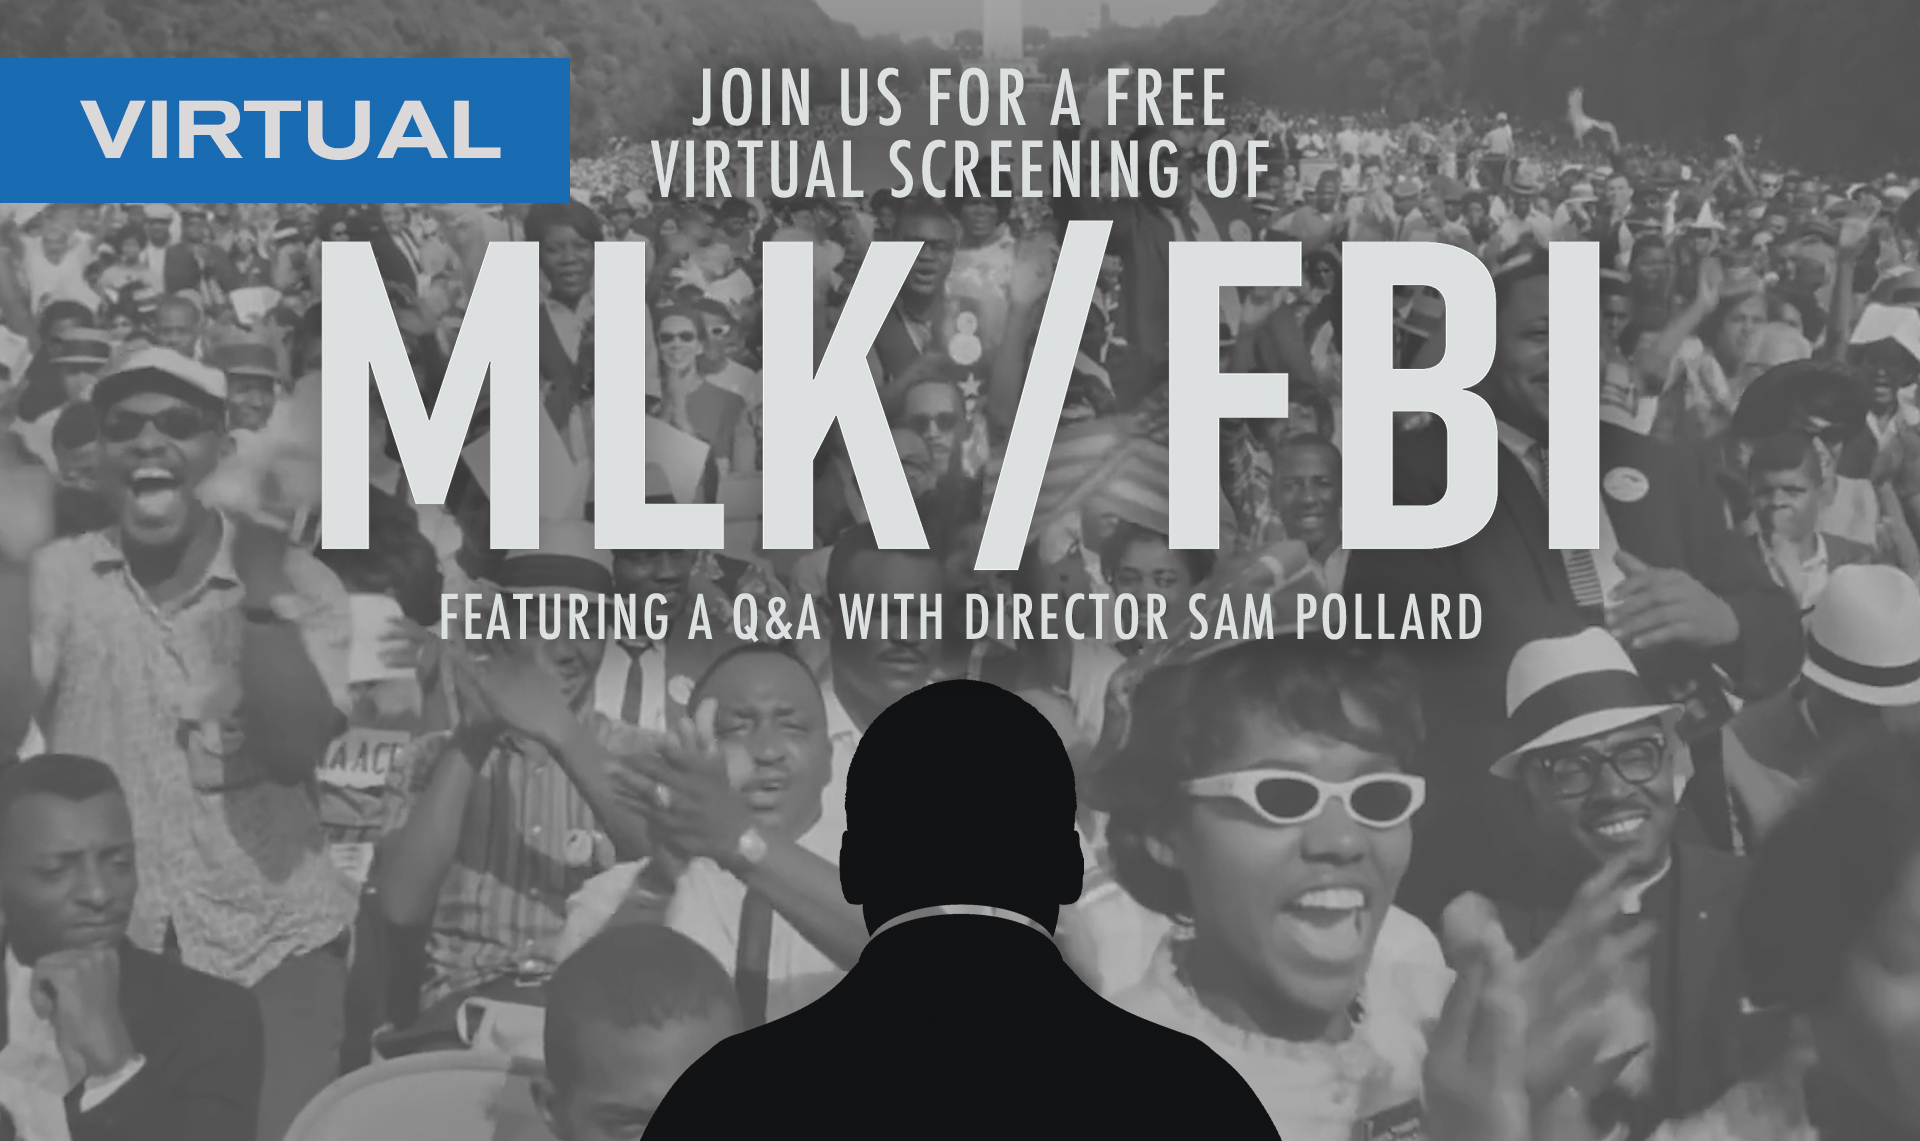 MLK/FBI featuring a Q&A with director Sam Pollard